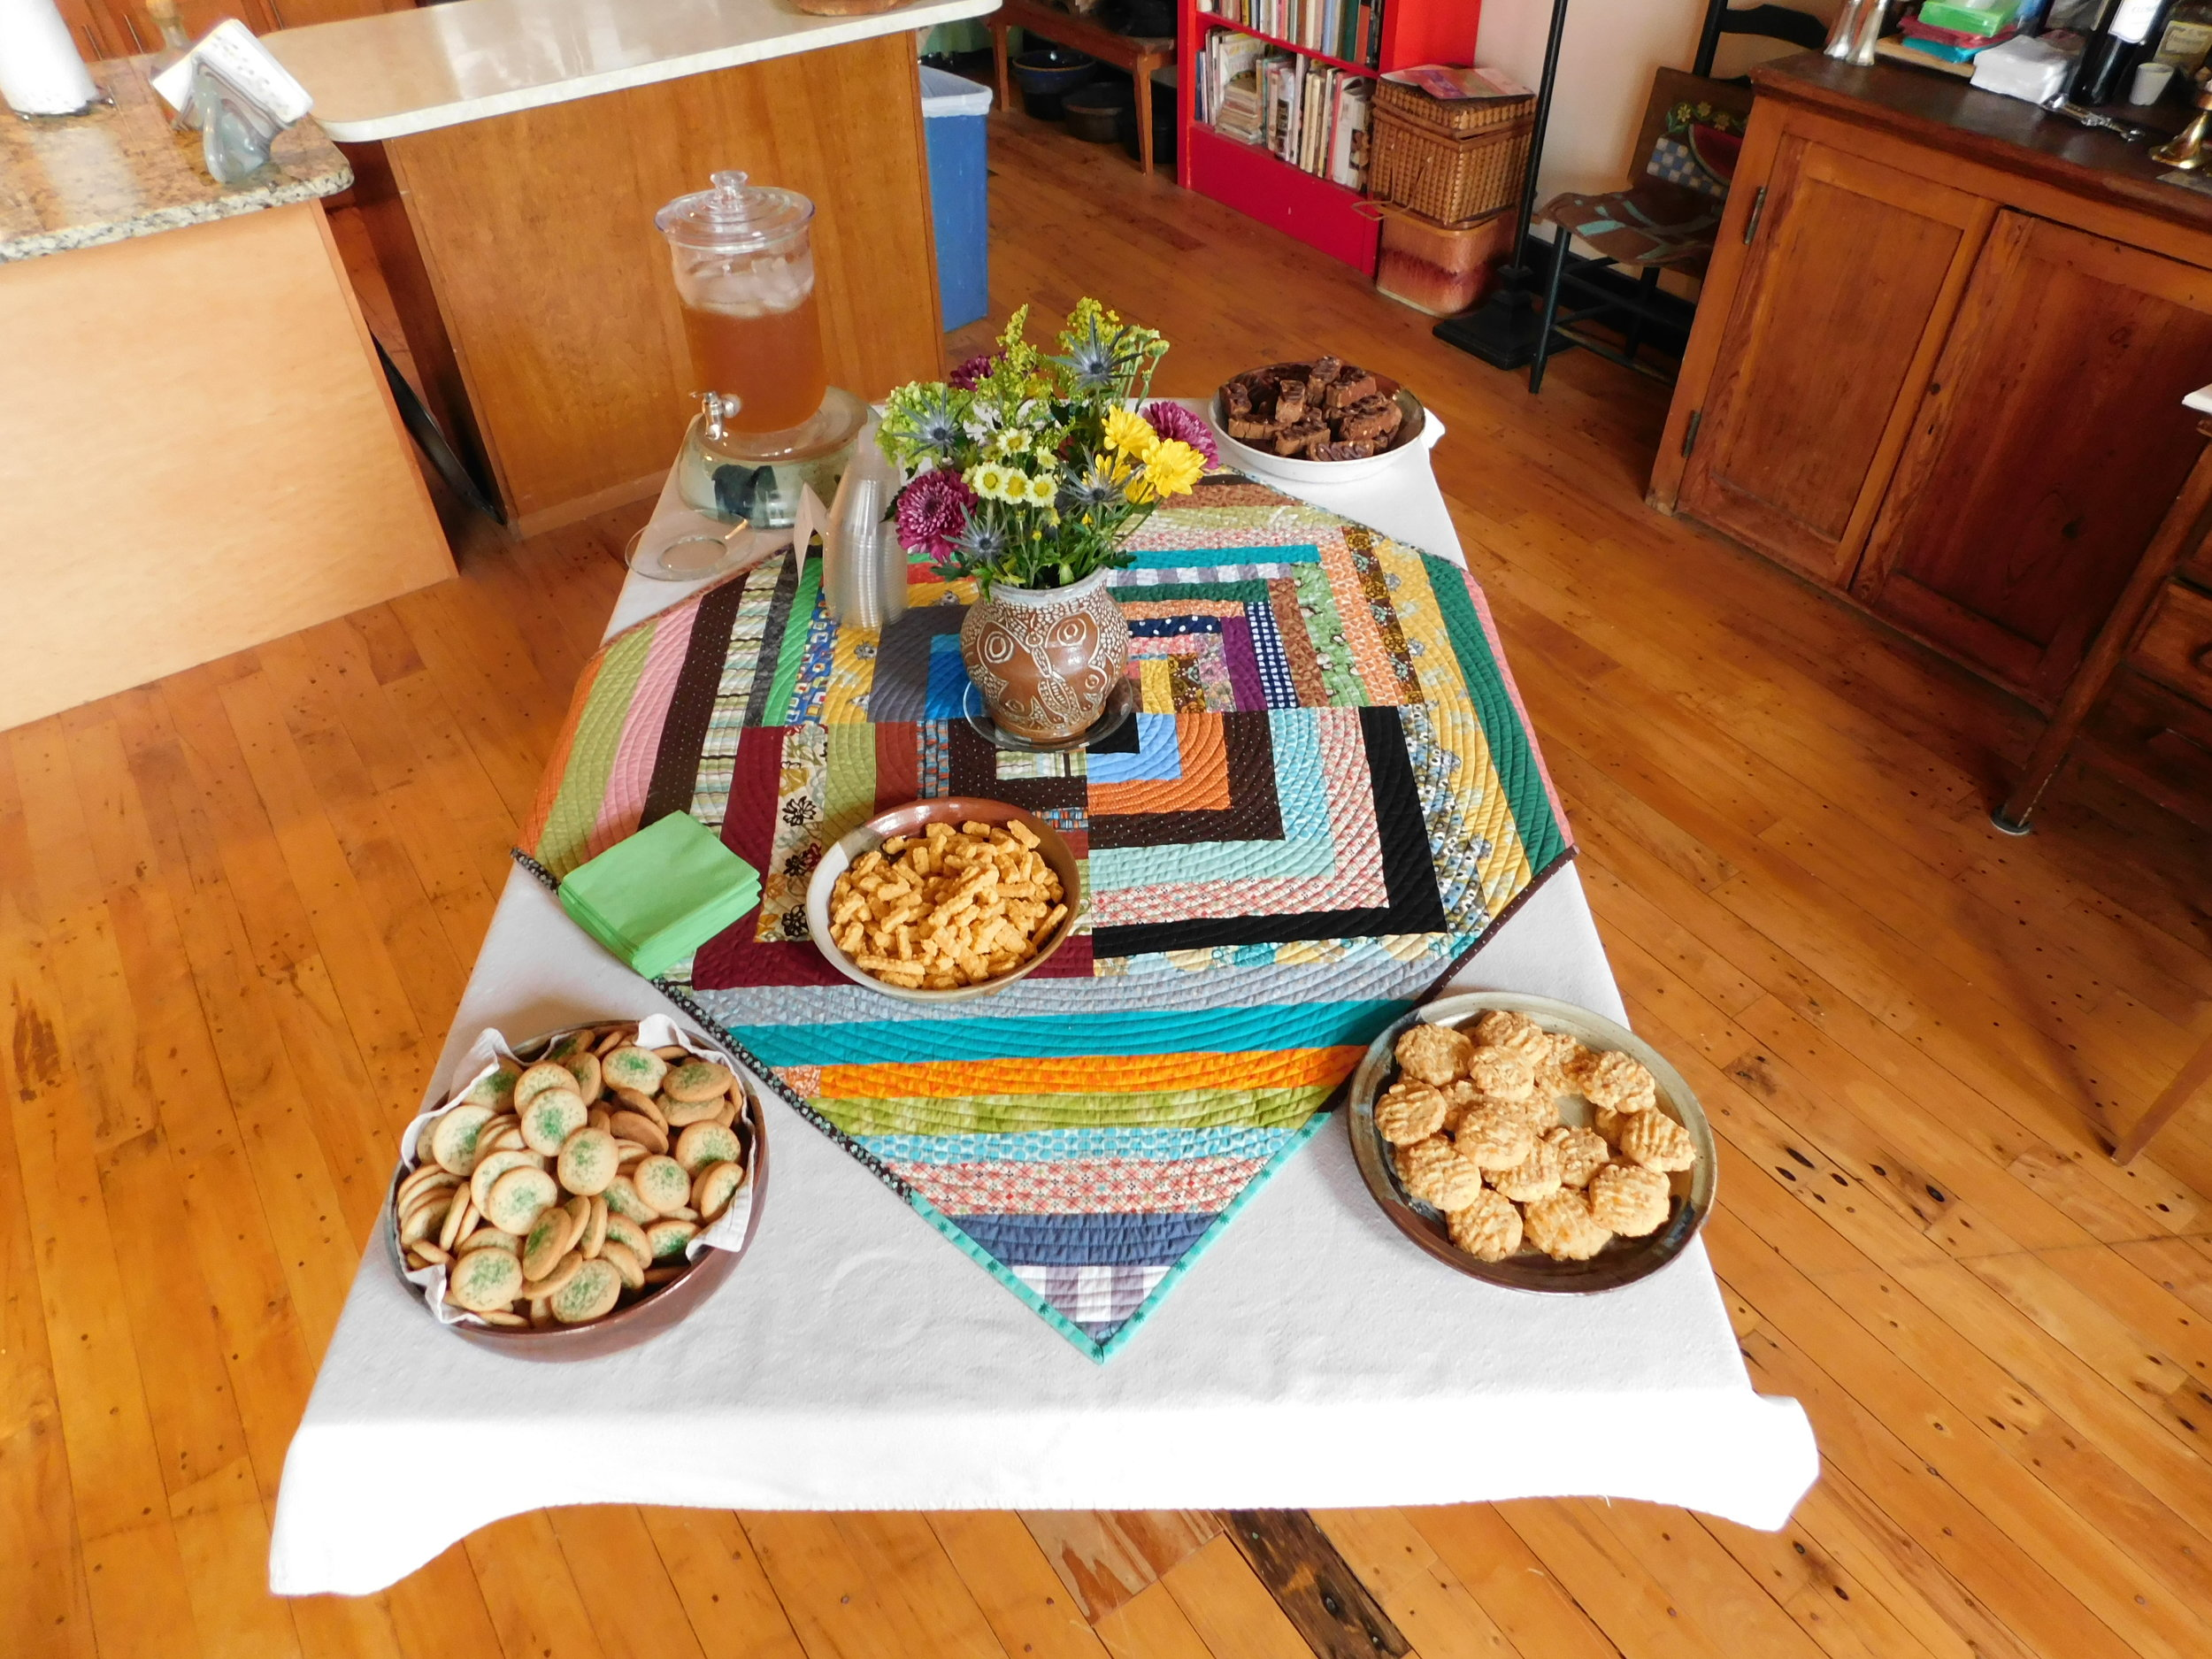 """This is the """"before"""" version. As guests arrived bearing offerings, the table became more heavily laden."""